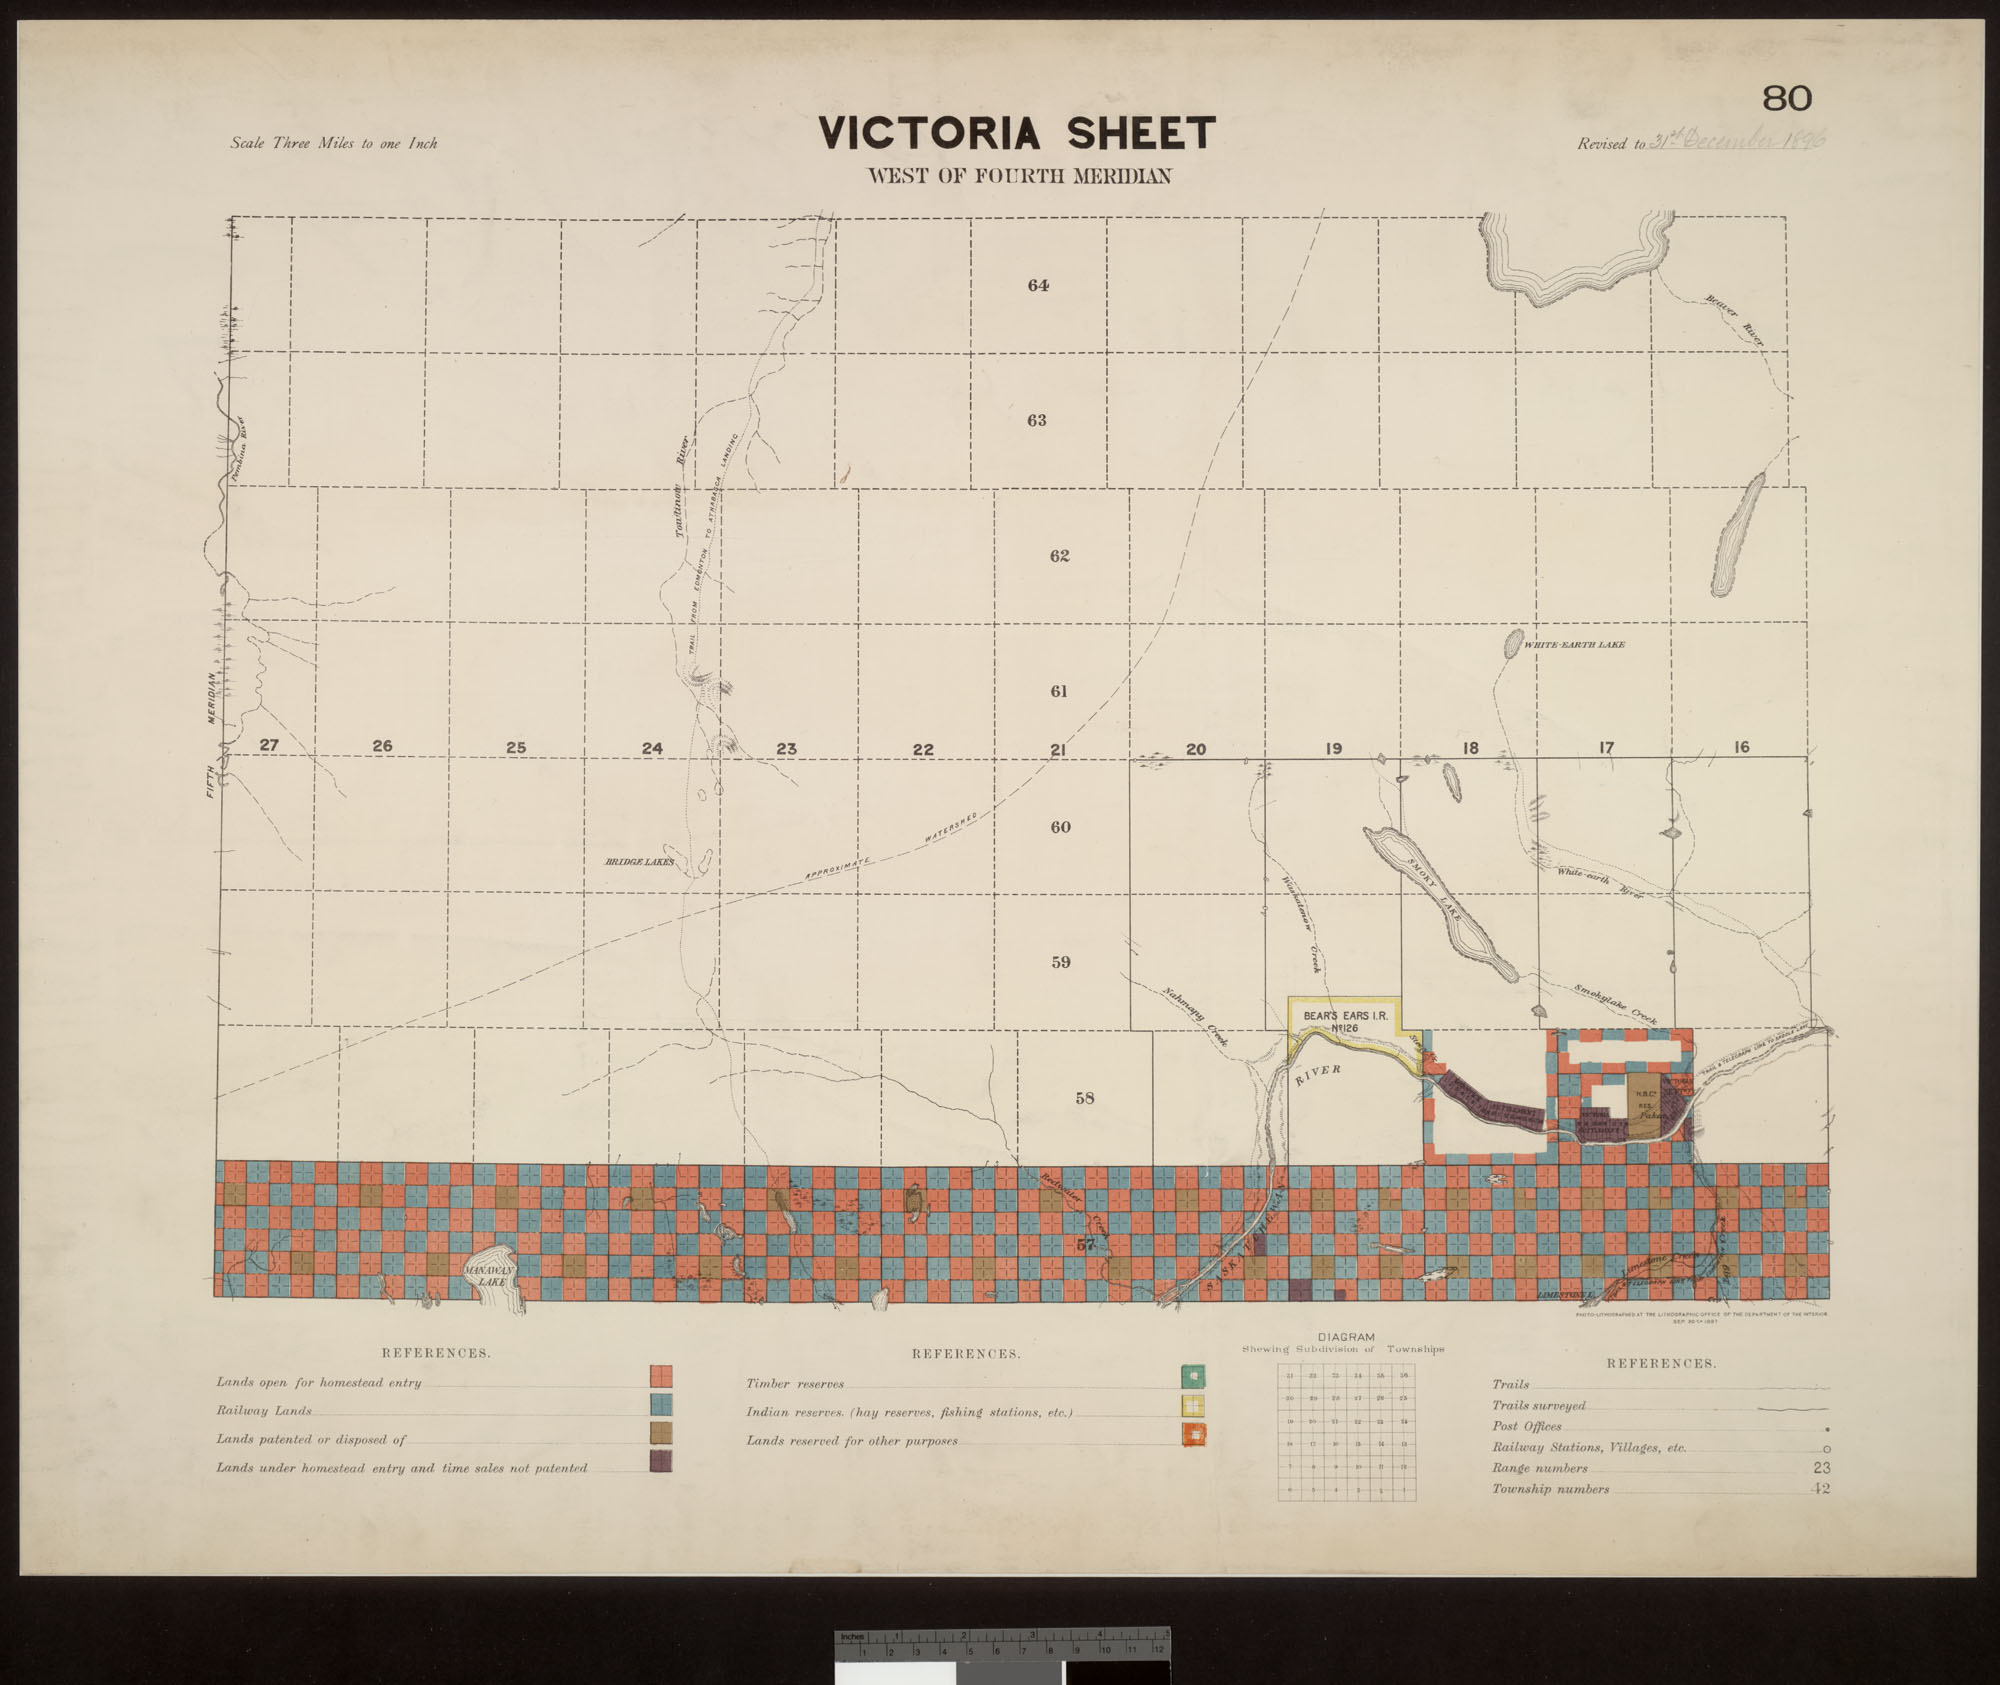 Digitized image of map no. 80, Victoria, west of the fourth meridian, MIKAN 3705295, image number e003004453